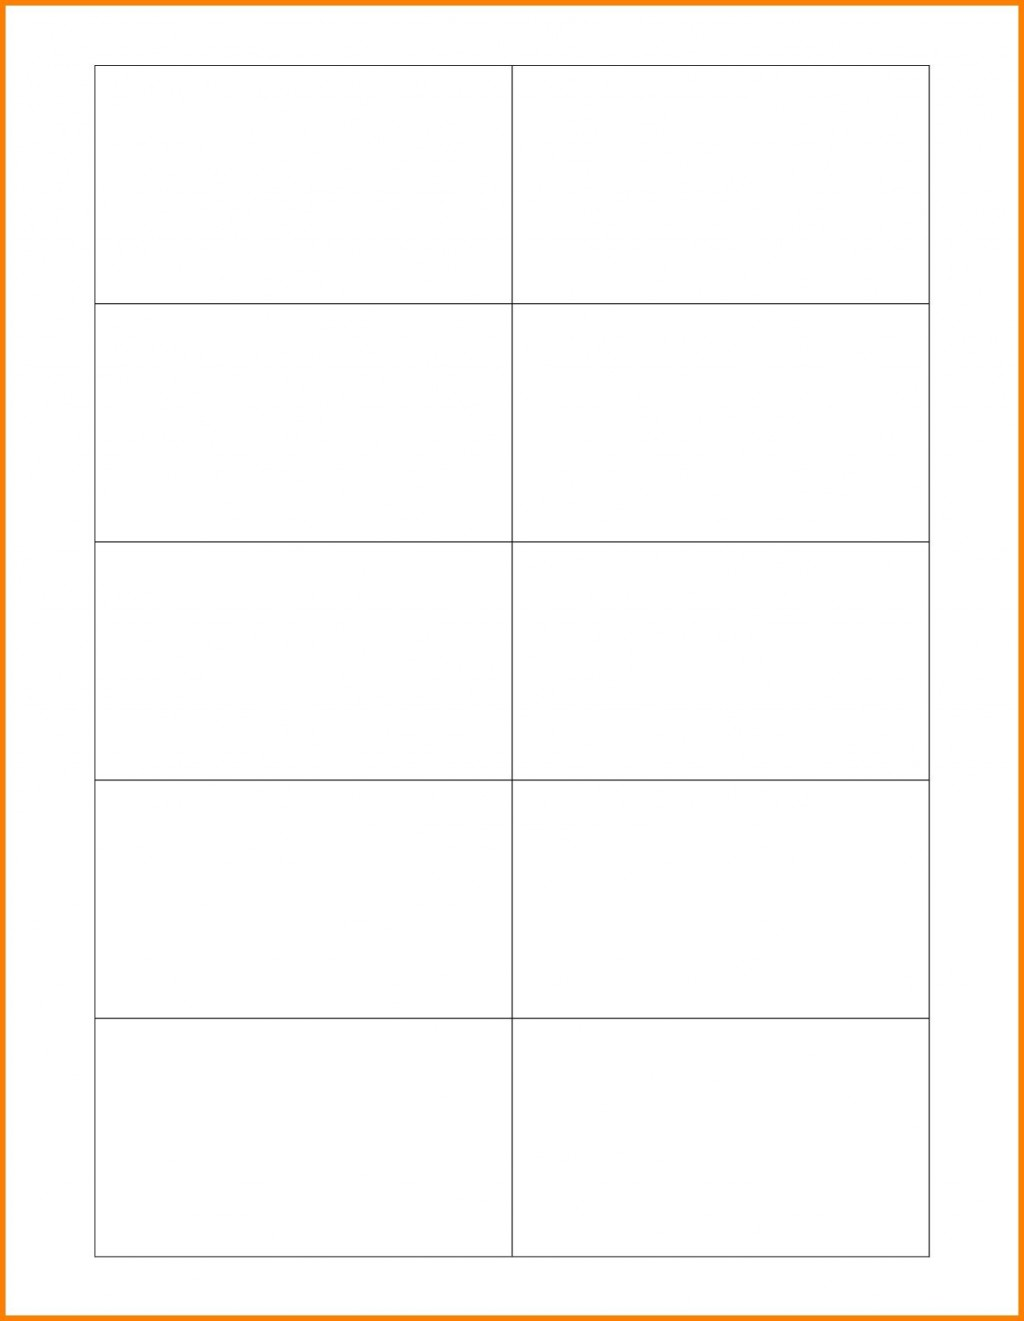 000 Awesome Blank Busines Card Template Word Highest Quality  Vertical Microsoft 2013 AveryLarge